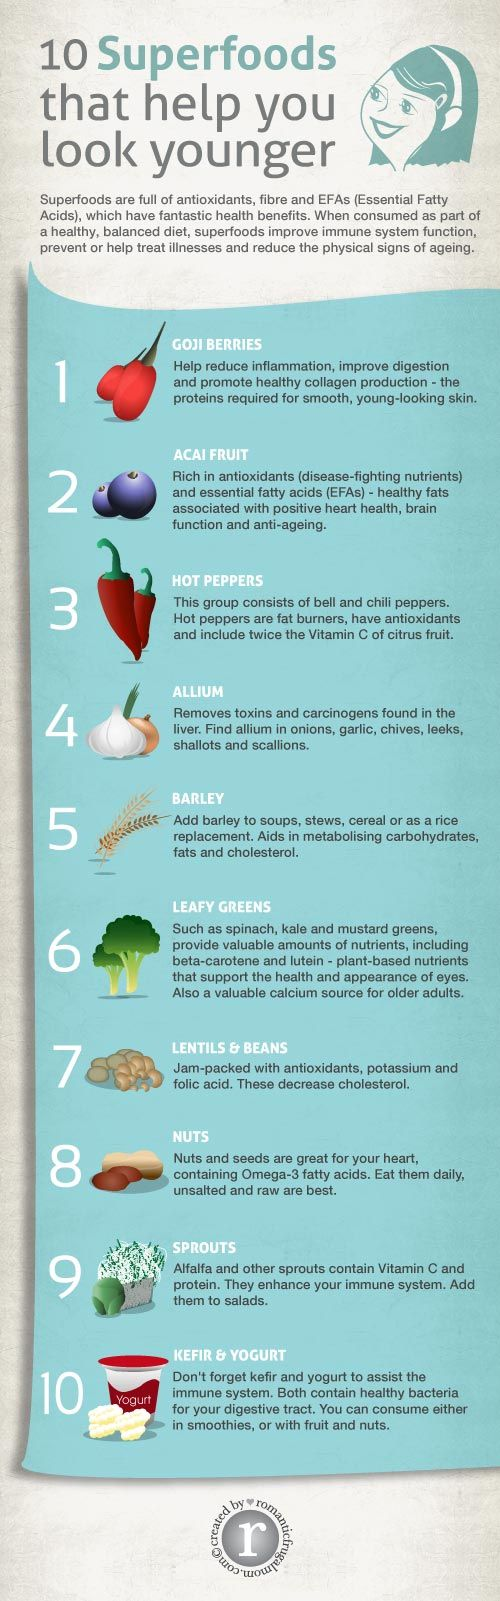 10 #Superfoods That Help You Look Younger